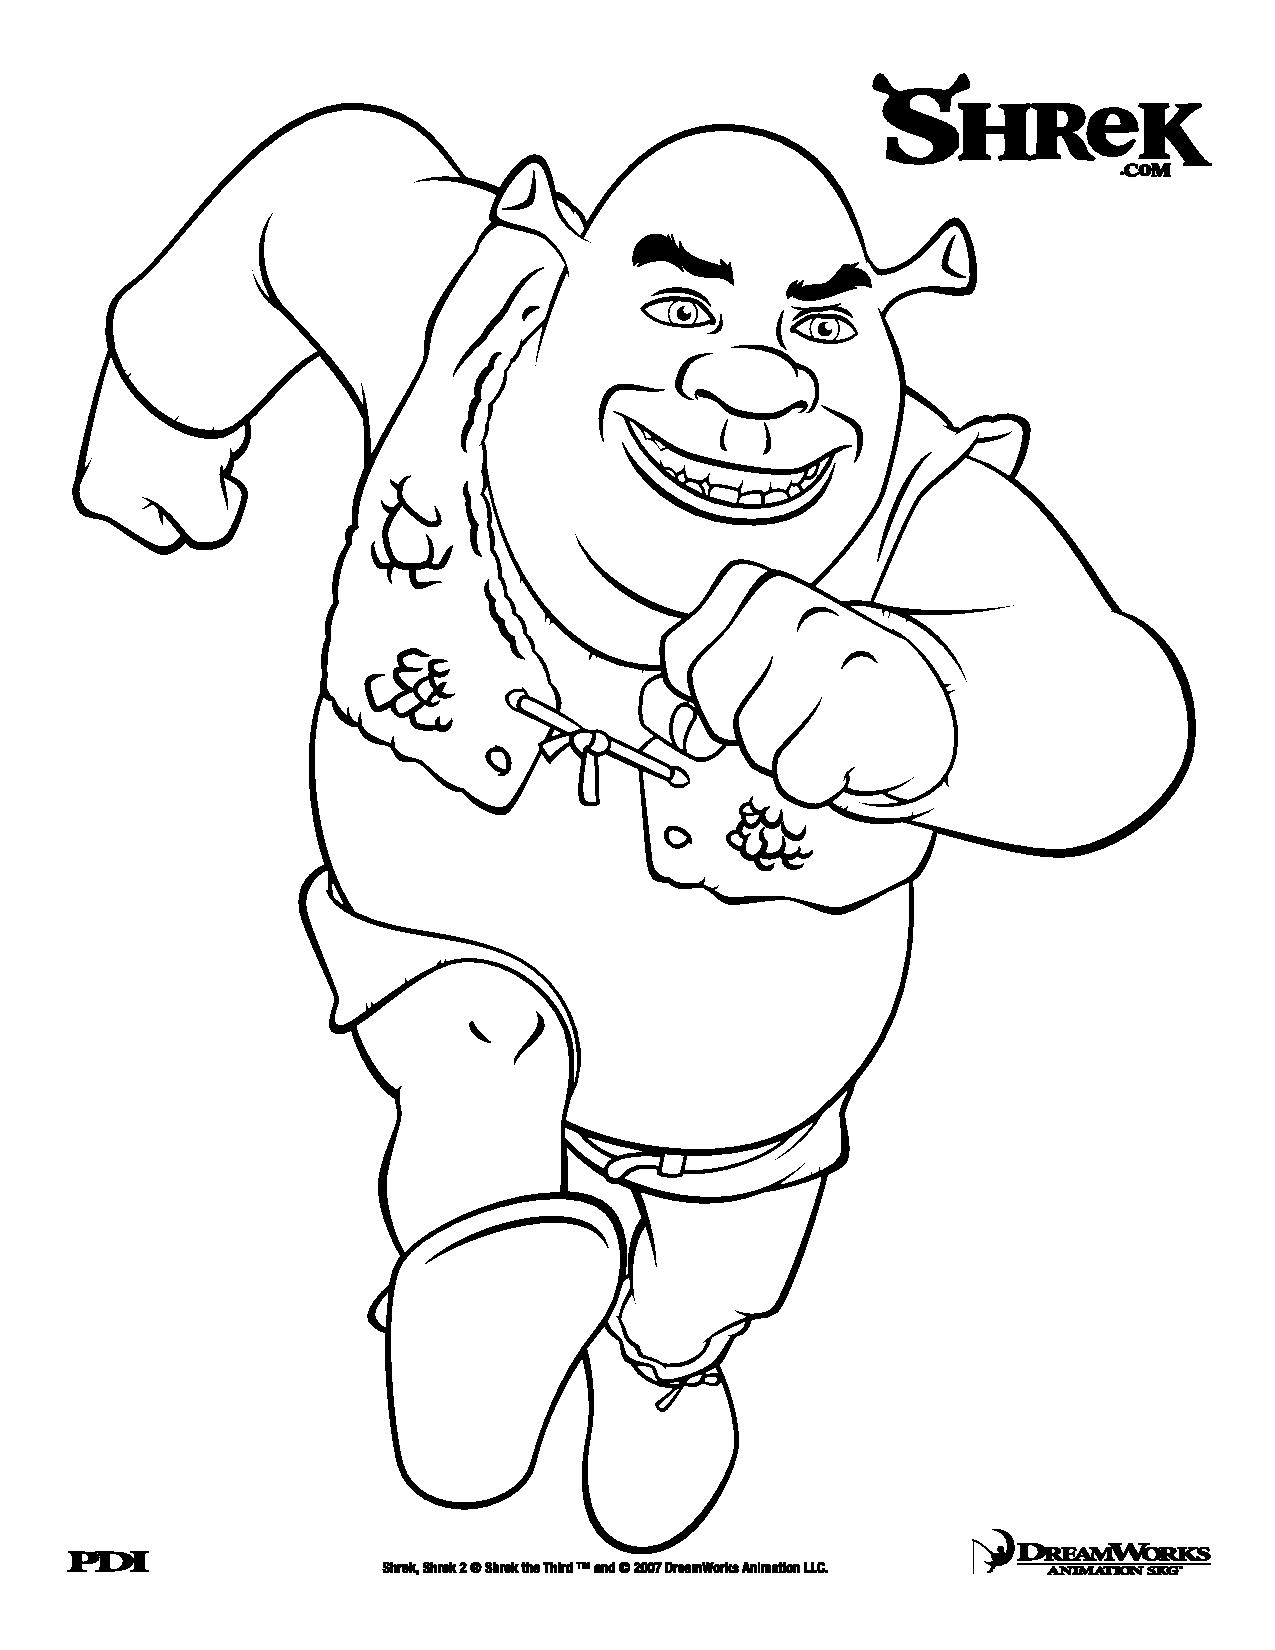 Funny Shrek coloring page for children